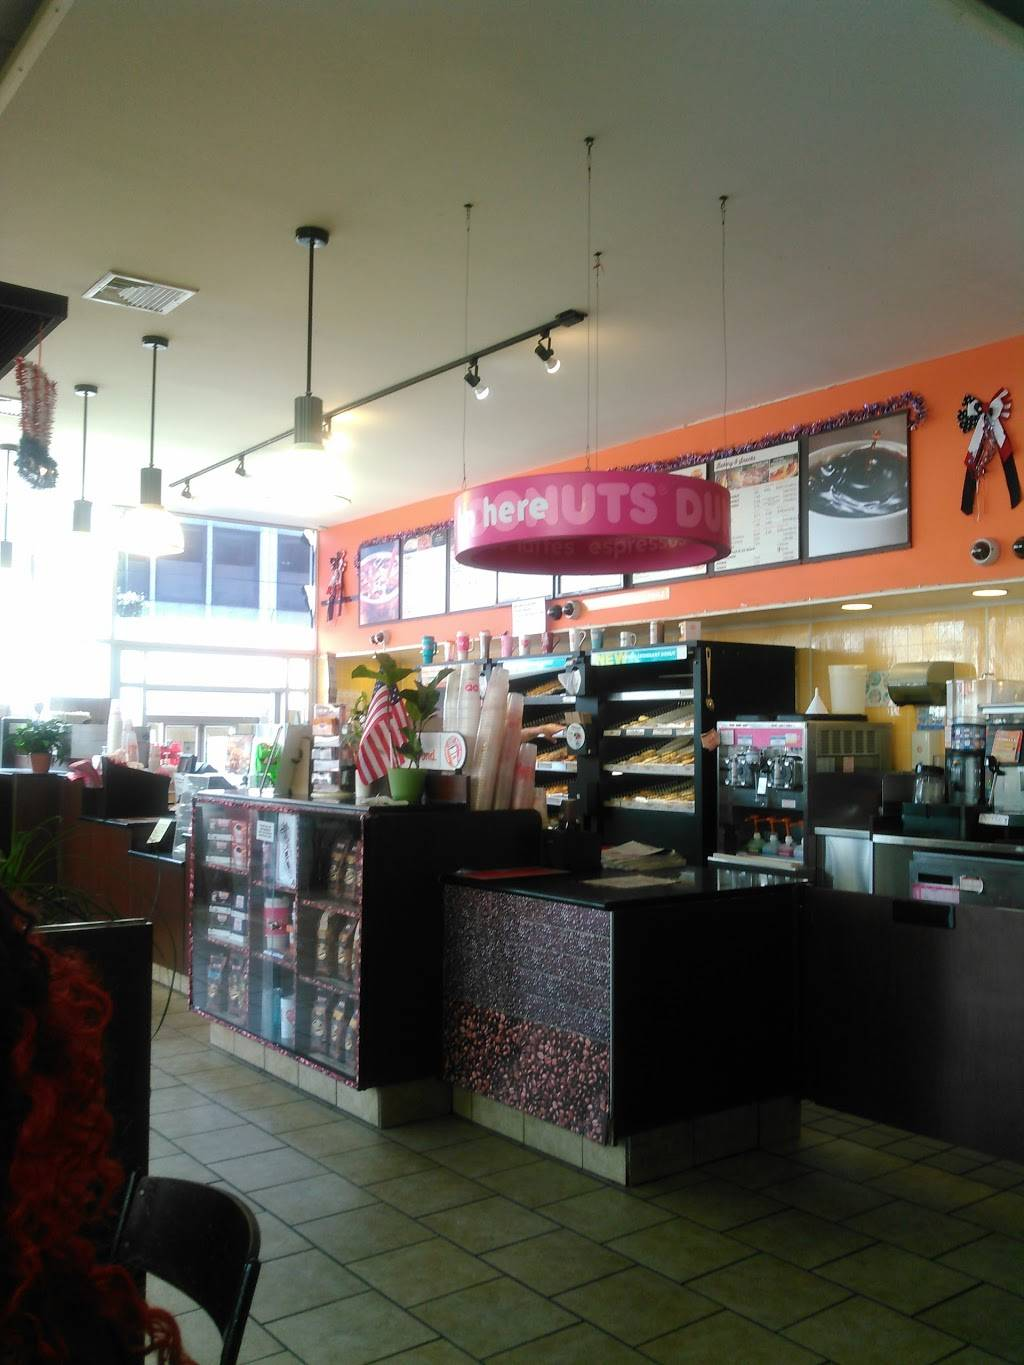 Dunkin | cafe | 112 N 6th St, Allentown, PA 18101, USA | 6104349300 OR +1 610-434-9300